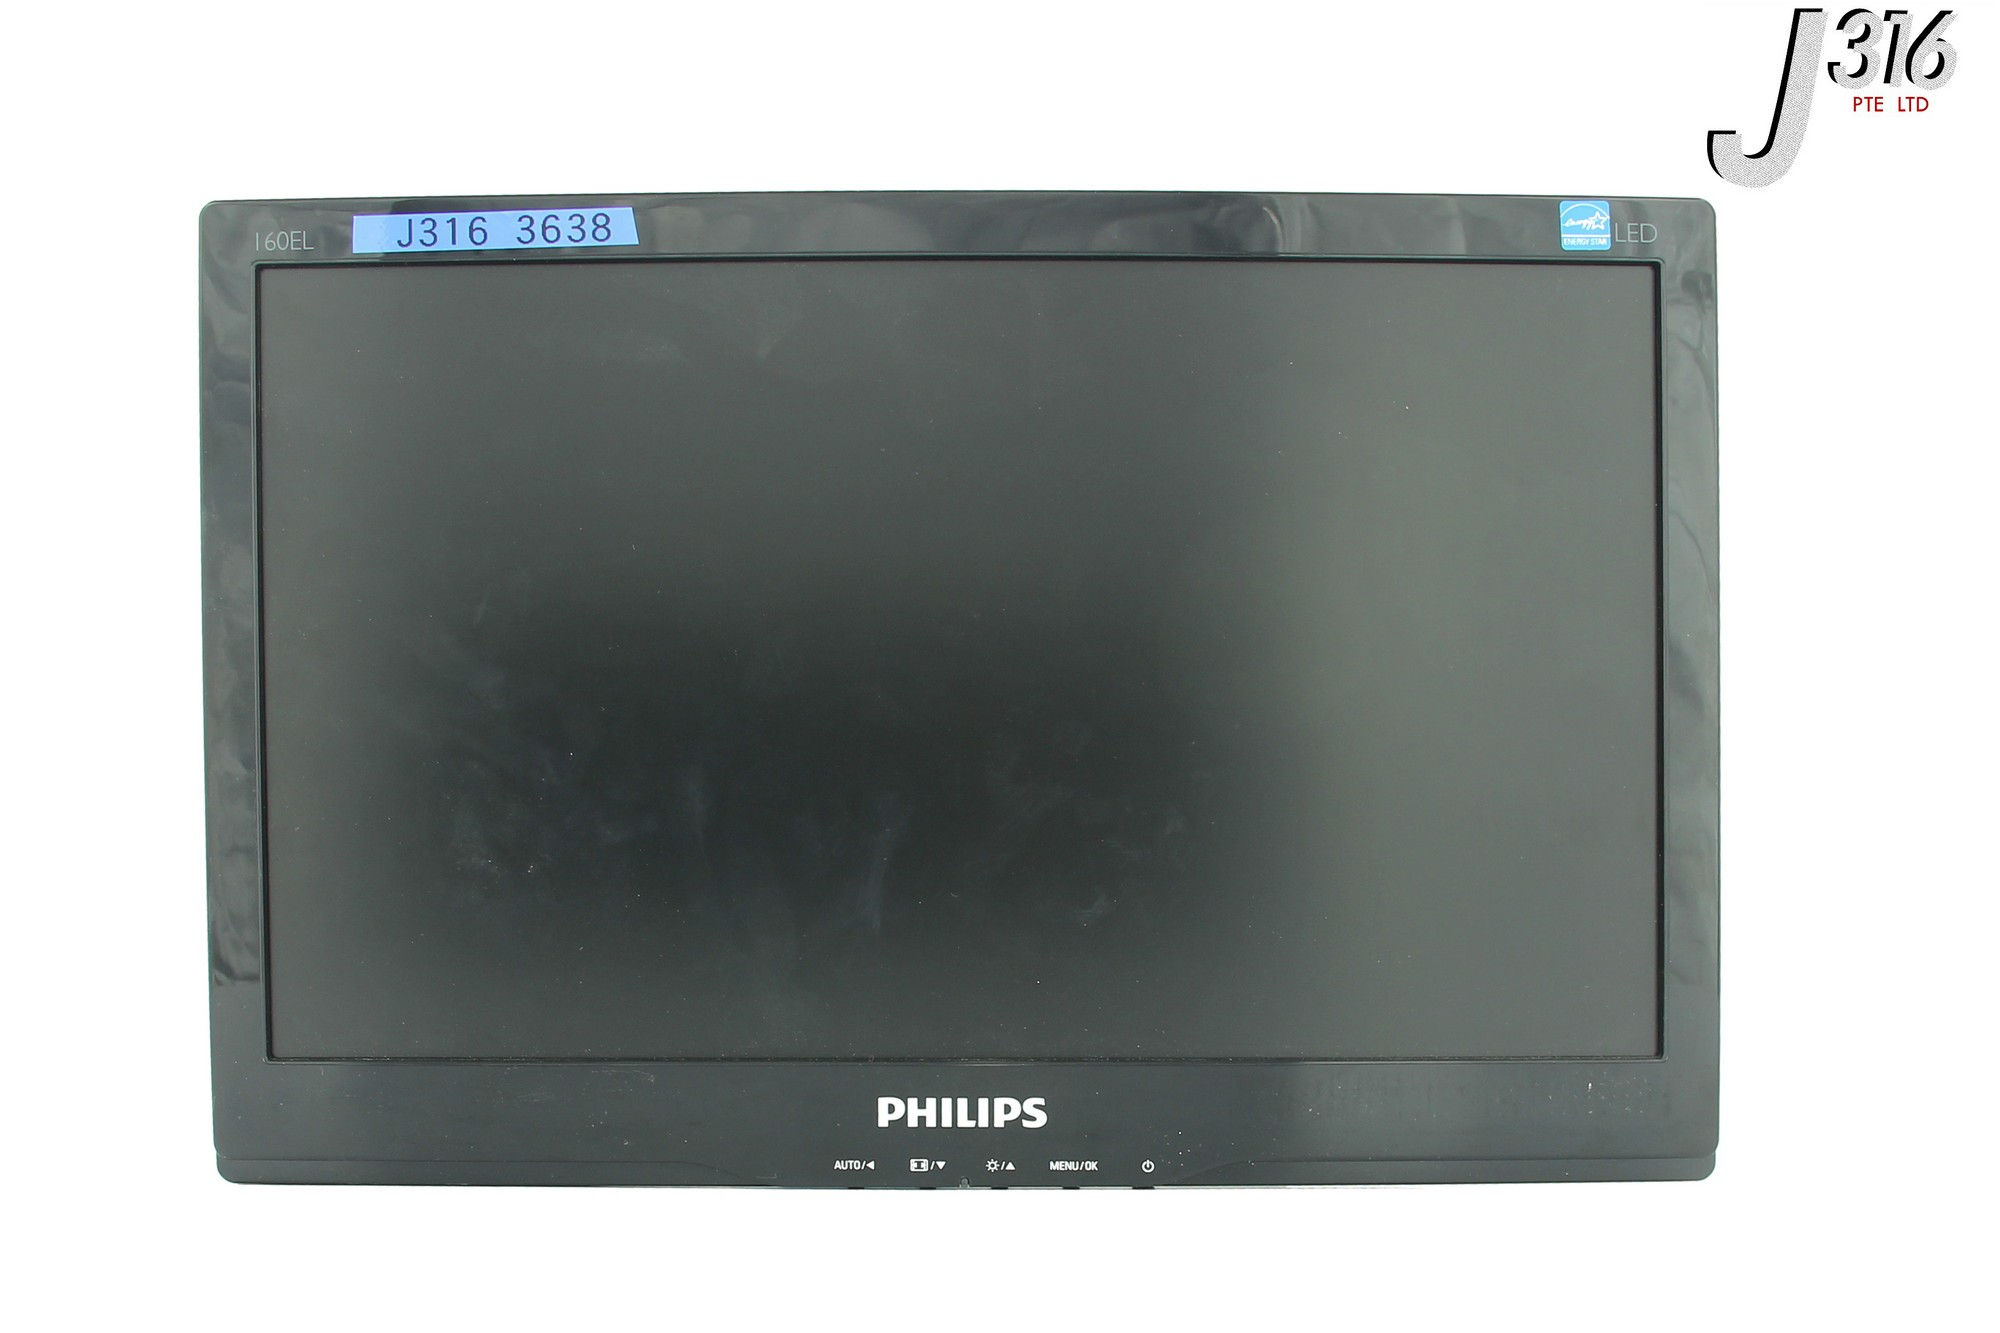 PHILIPS 160EL1SB00 MONITOR WINDOWS XP DRIVER